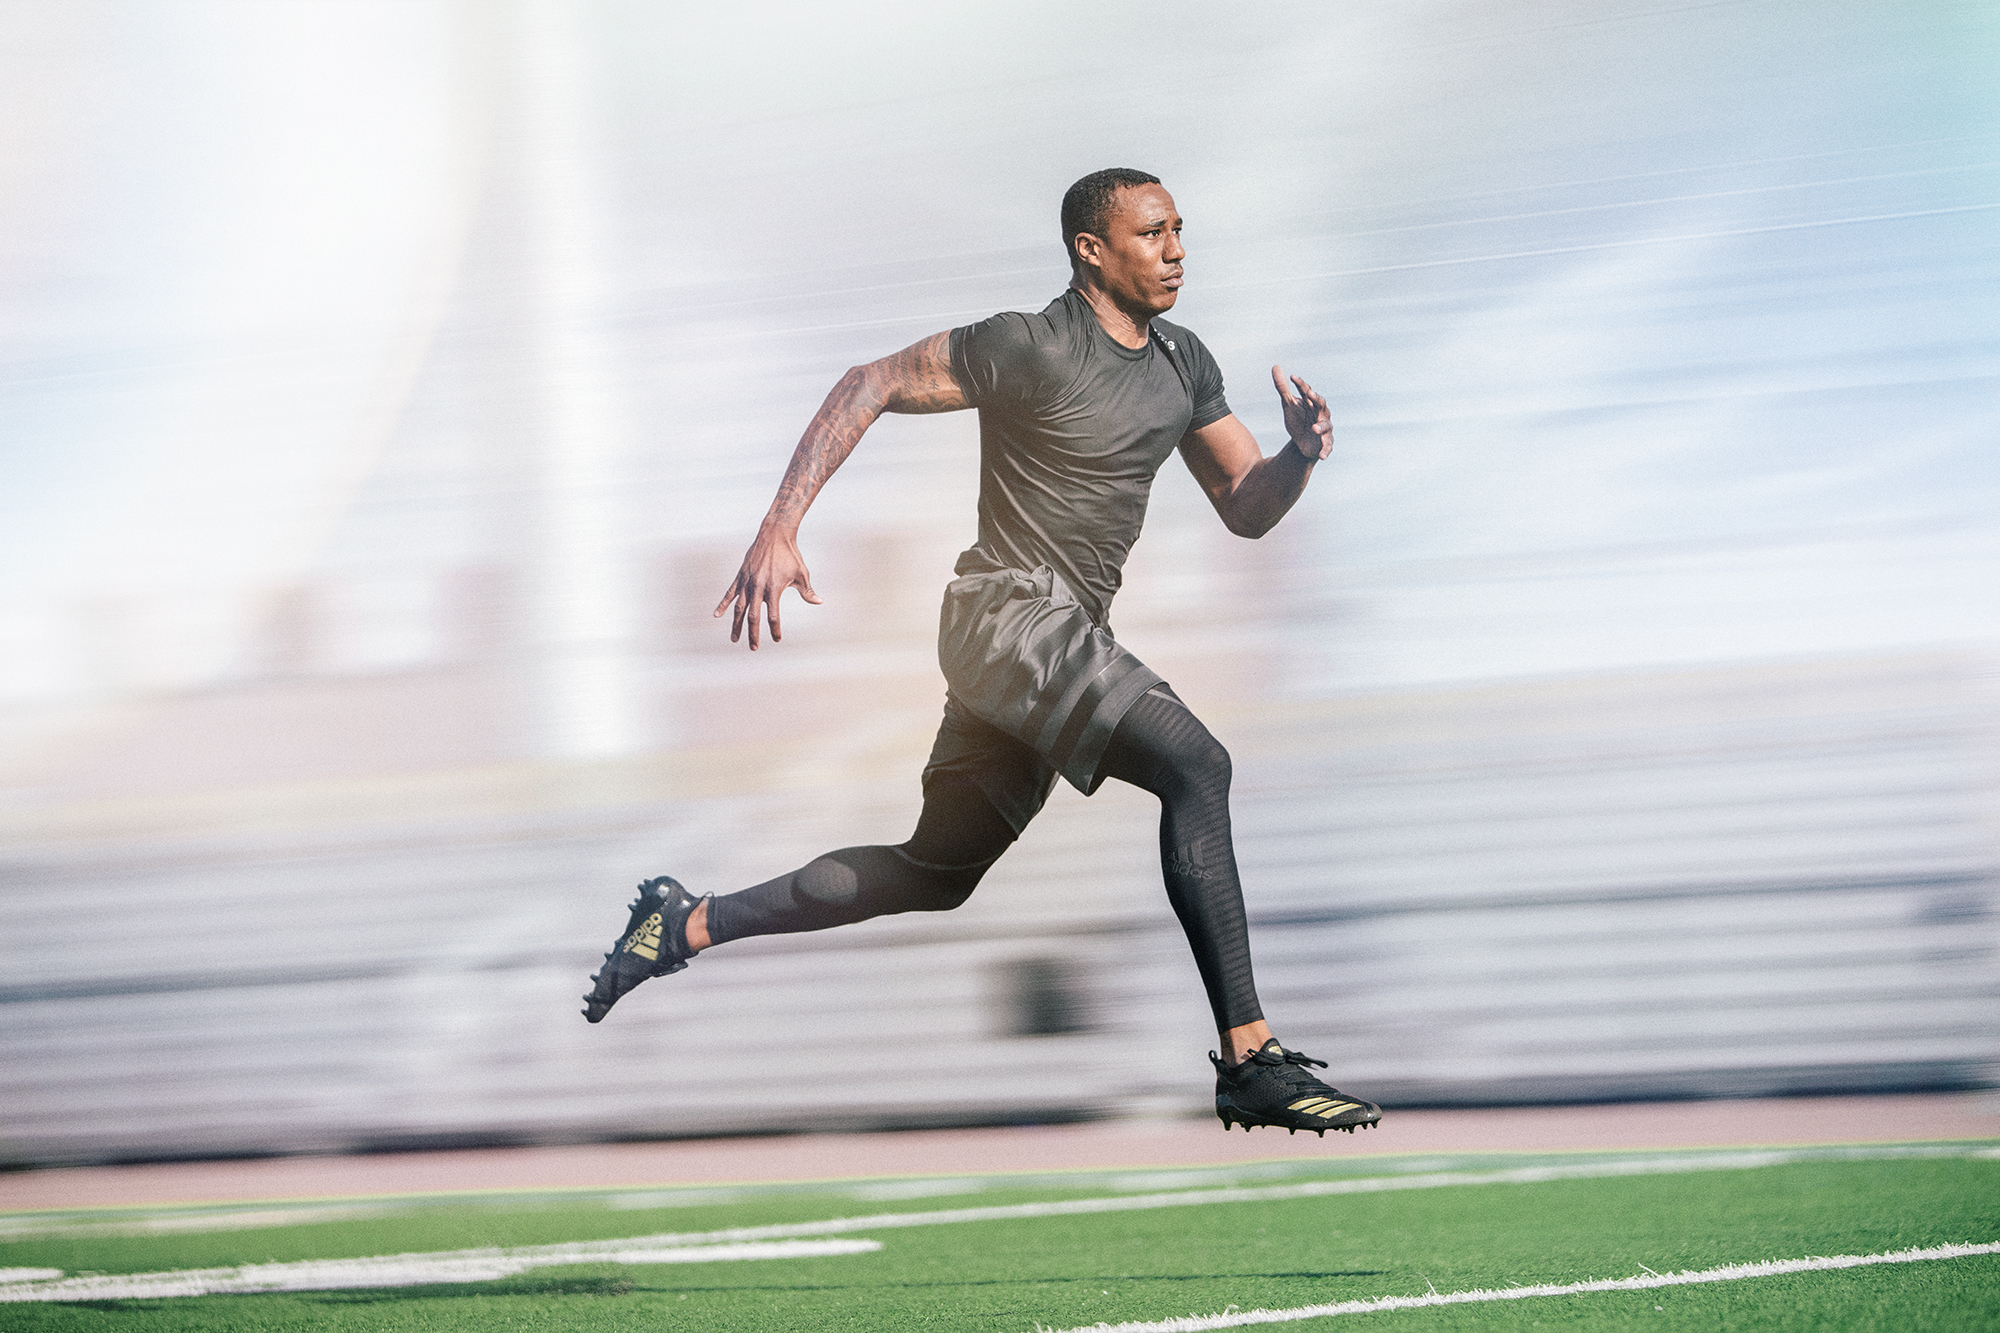 Marcus Peters, cornerback for the LA Rams, shot in Adi Zero for Adidas Football